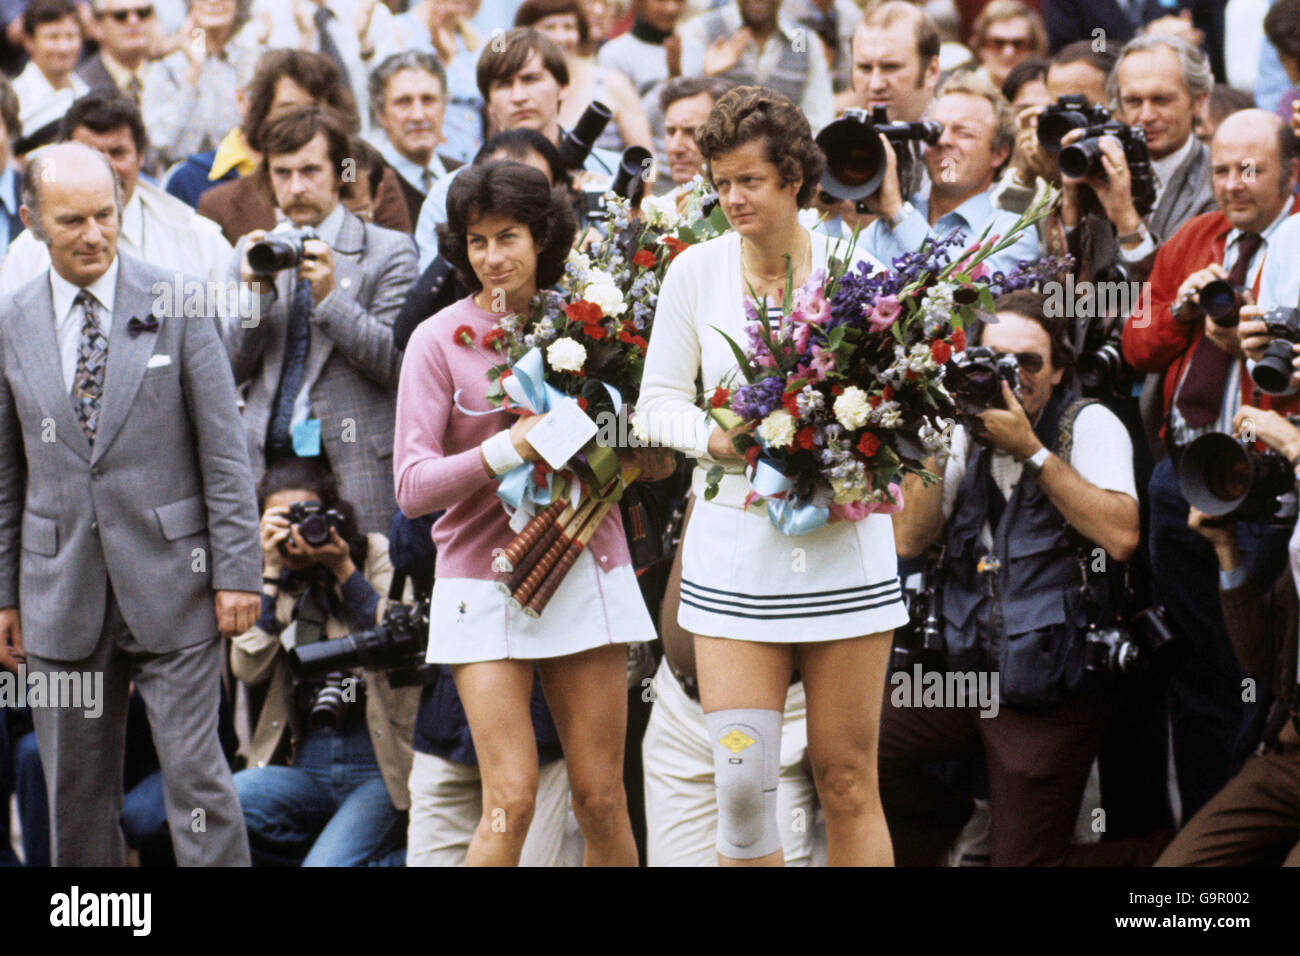 Virginia Wade v Betty Stove Wimbledon La s Final Stock